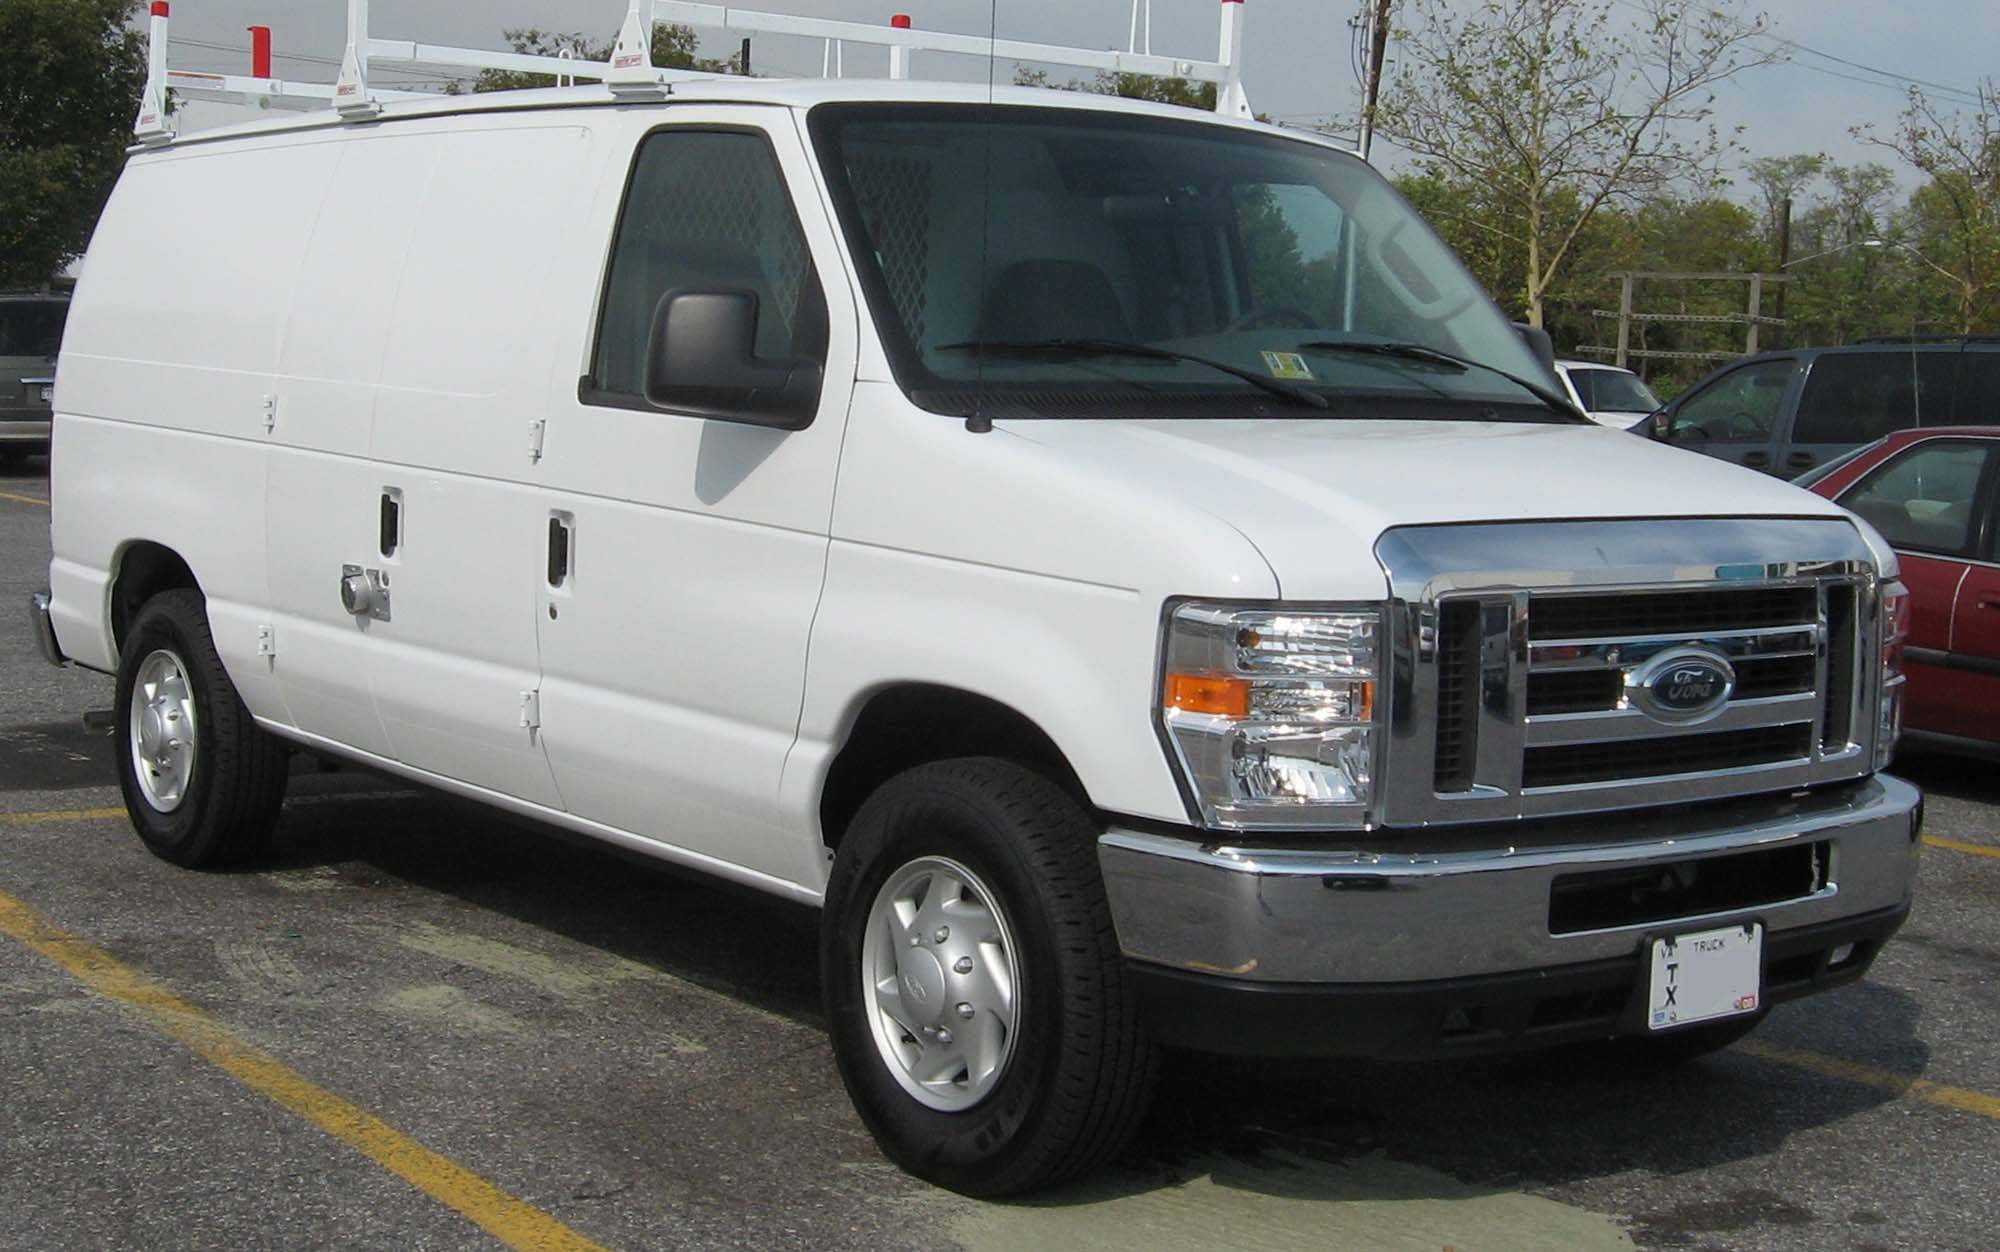 2000 Ford E-250 Recreational Extended Cargo Van 4-spd auto w/OD